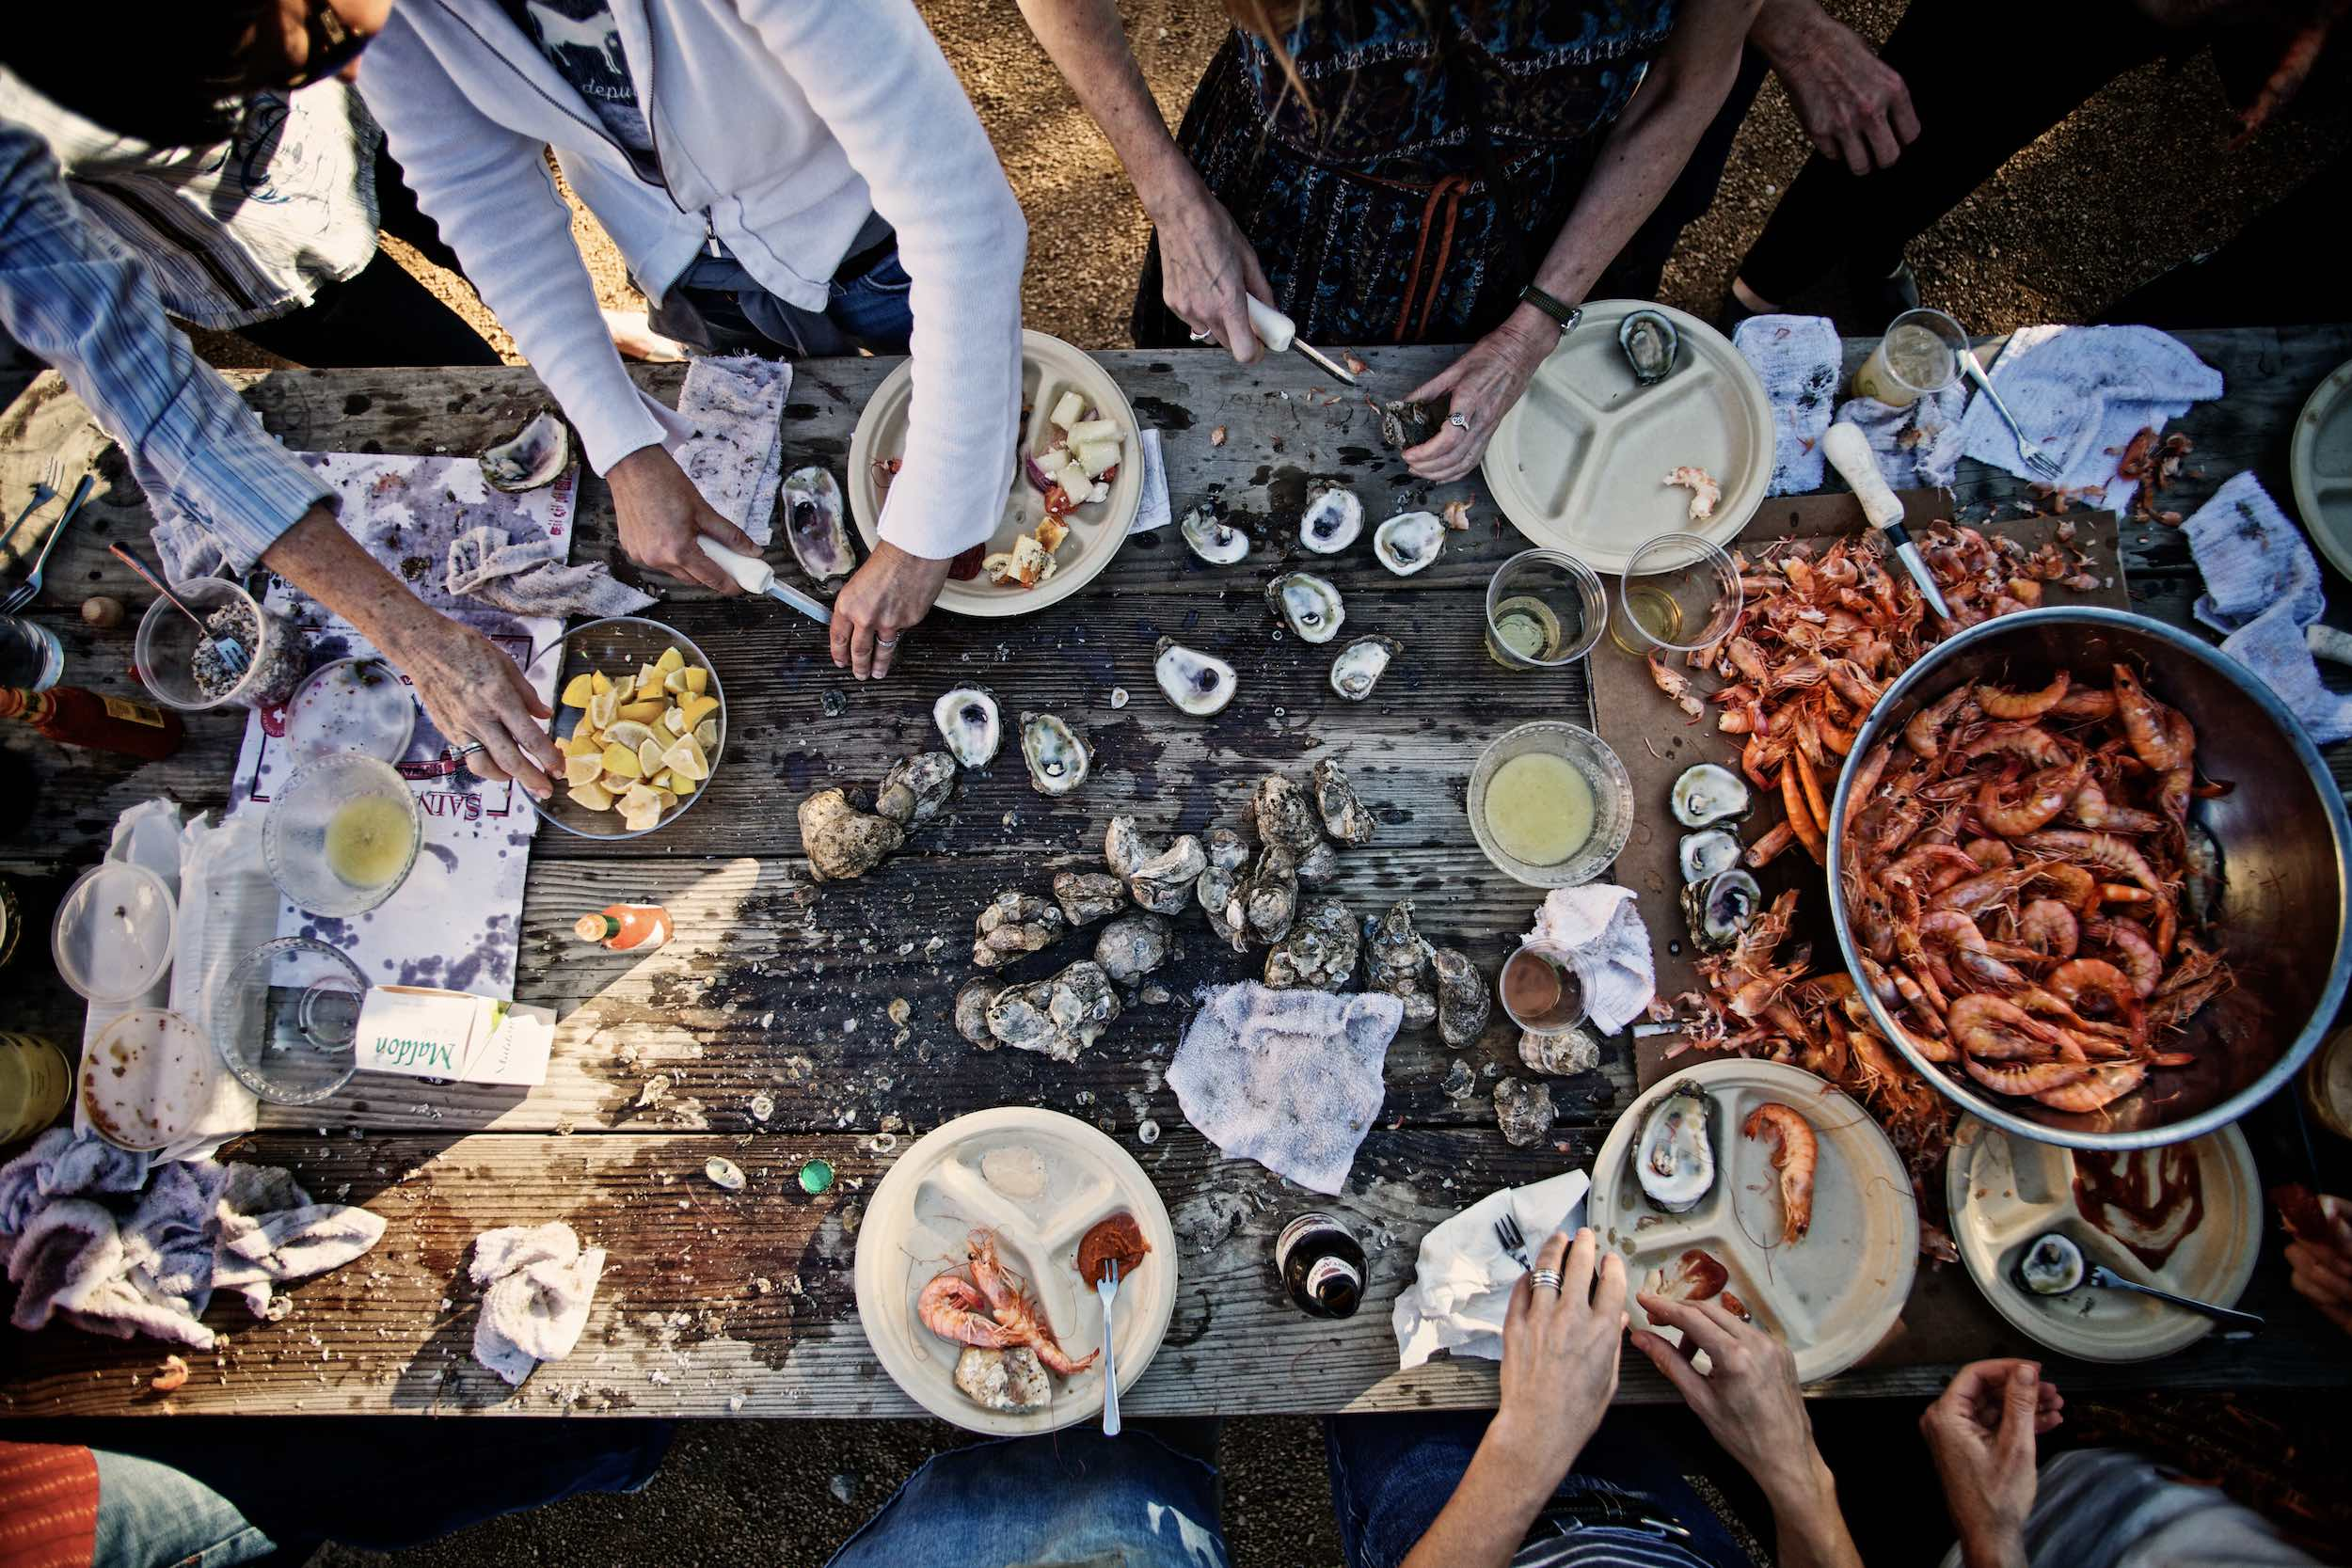 Jody Horton Photography - Oyster and shrimp preparation on wood picnic table.